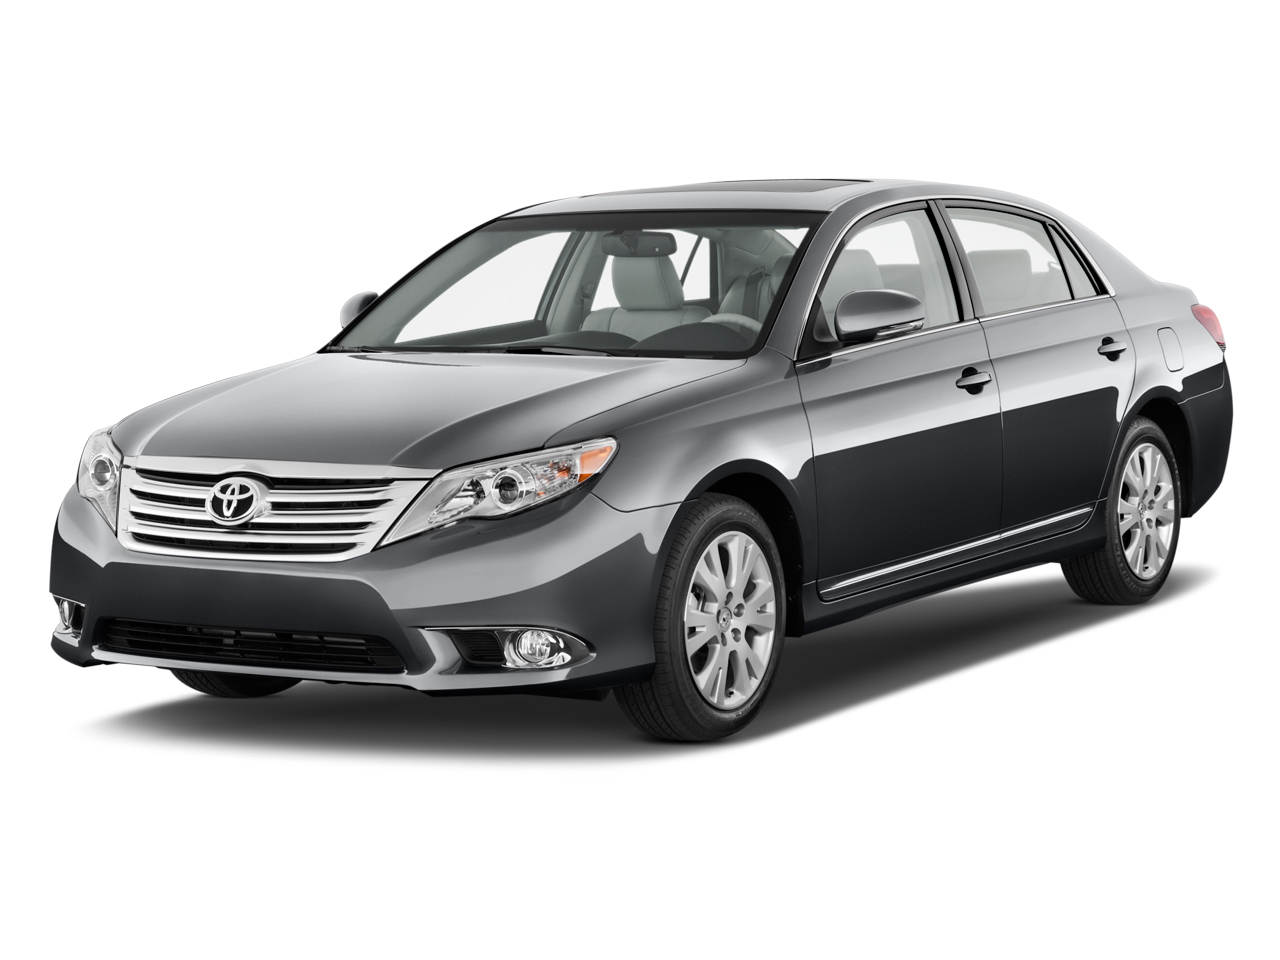 2011 toyota avalon review ratings specs prices and. Black Bedroom Furniture Sets. Home Design Ideas